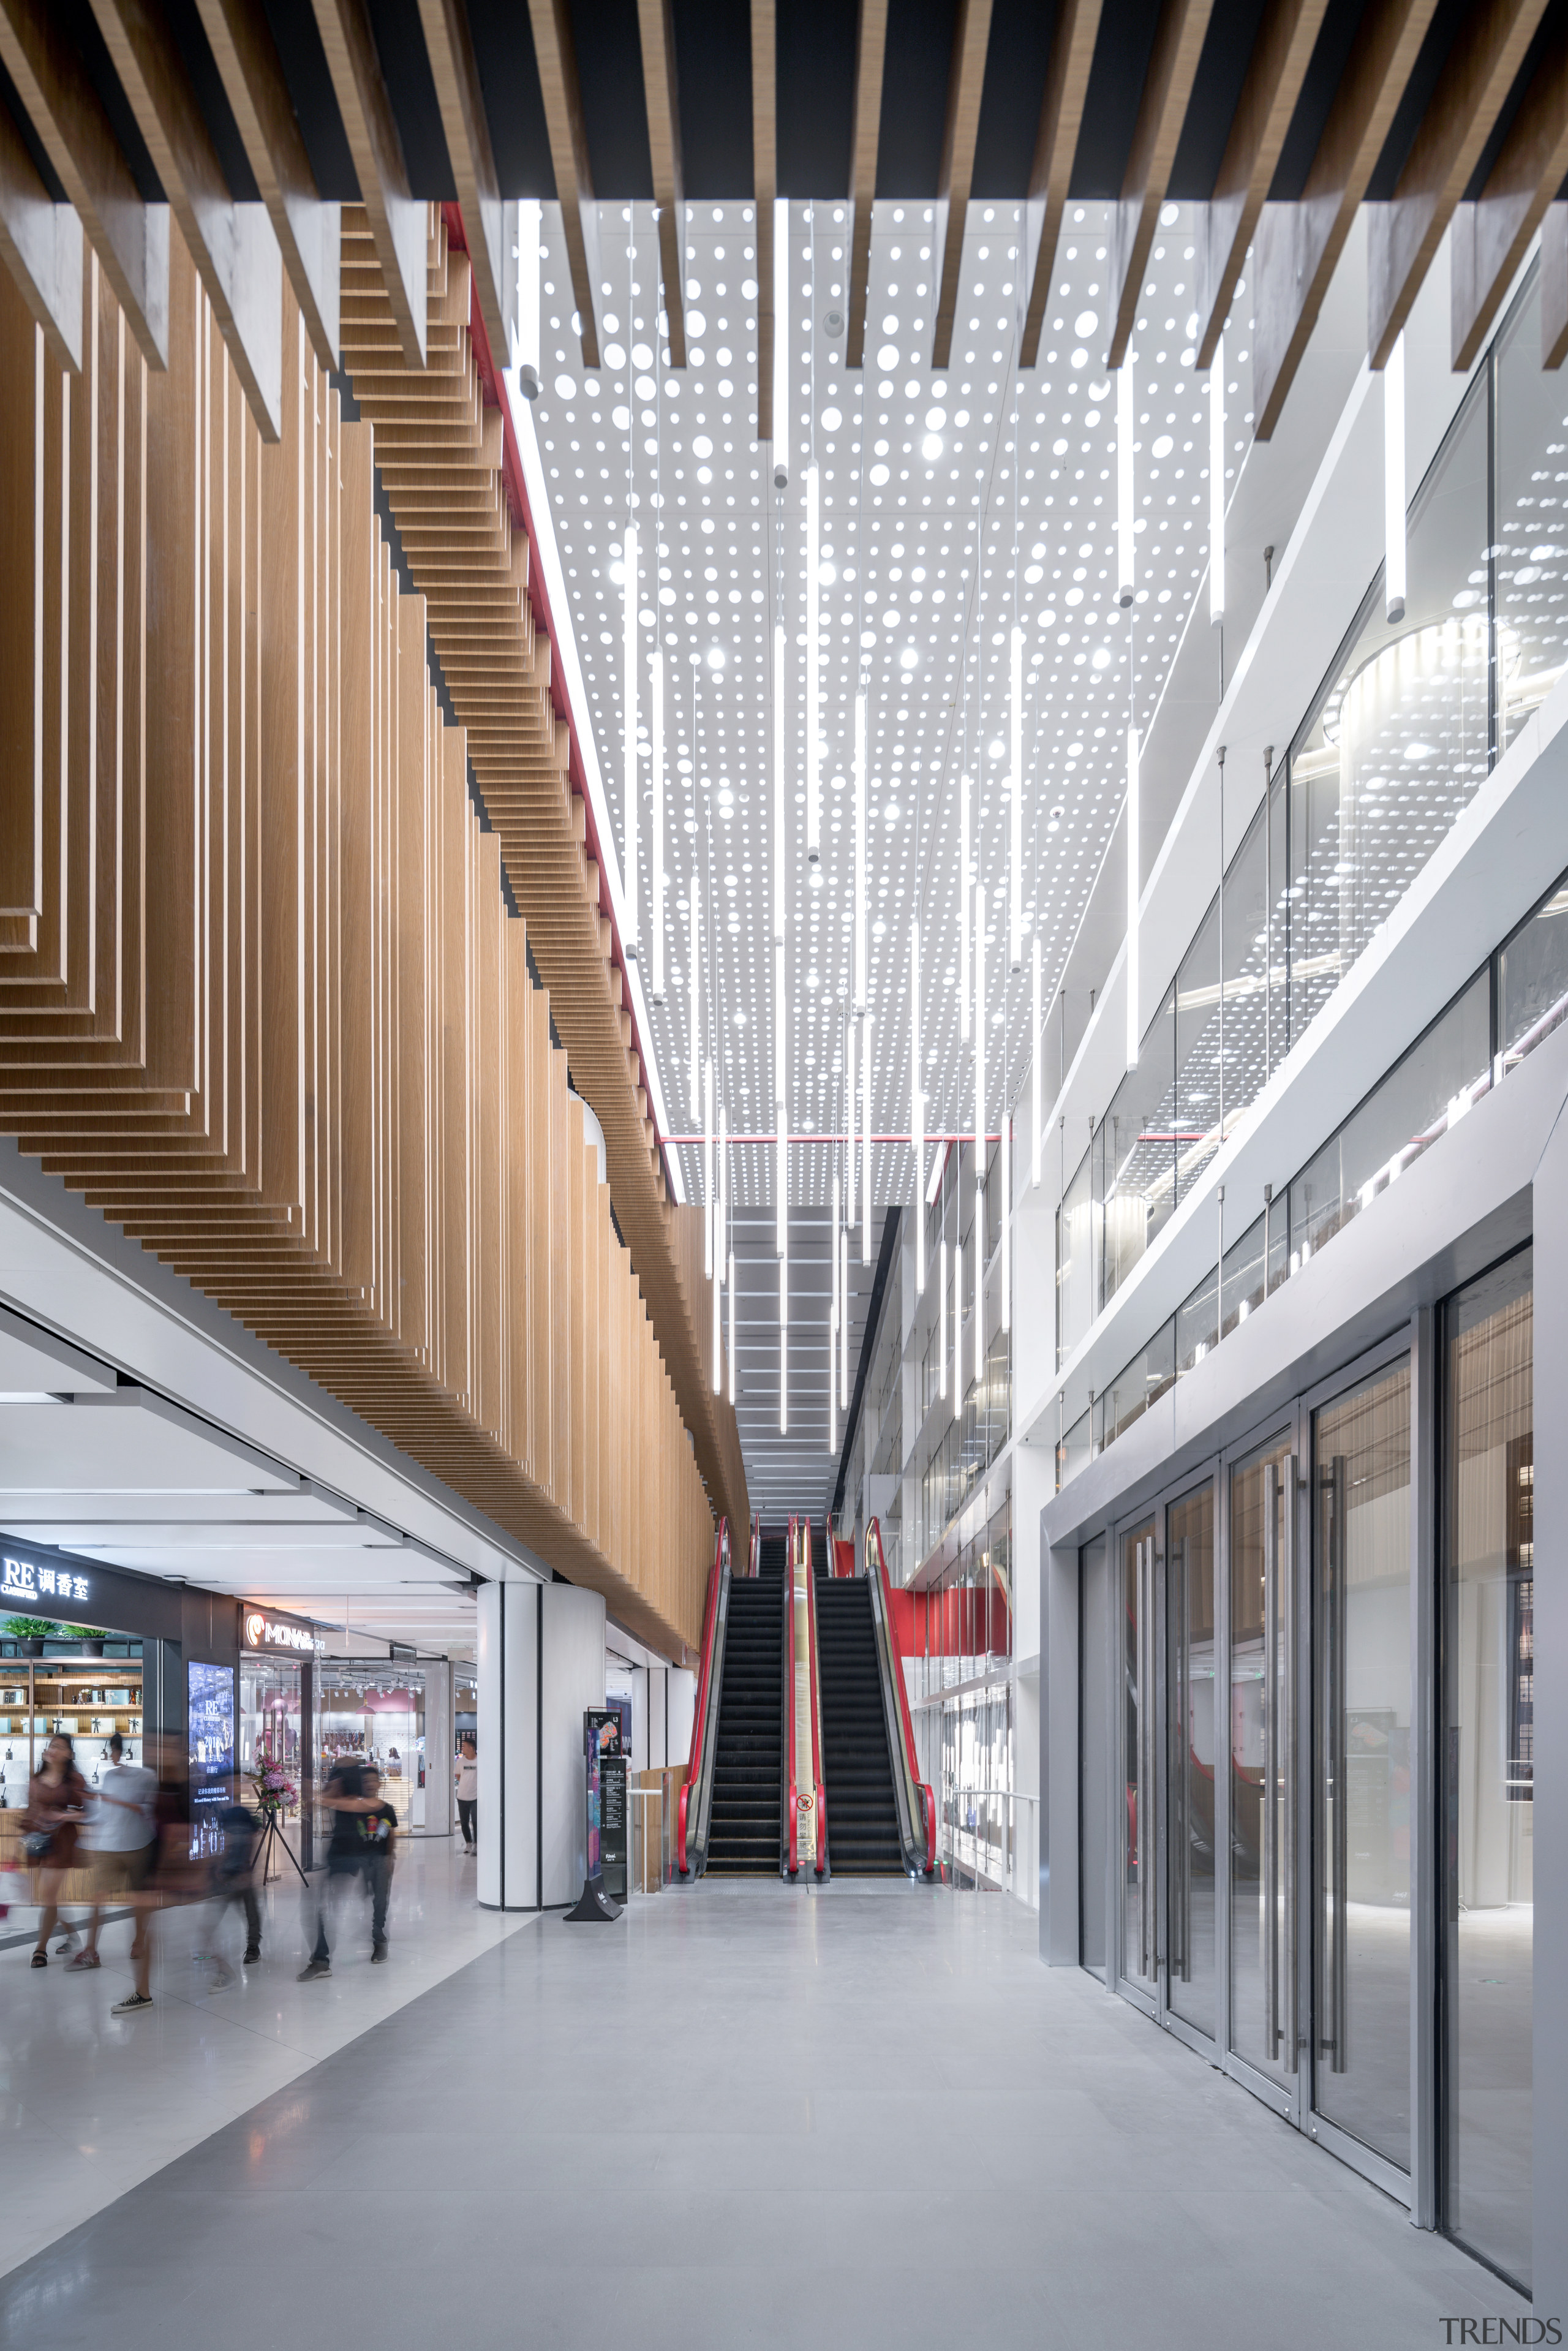 Long escalators lead directly up to the higher architecture, building, commercial building, interior design, lobby, shopping Mall, escalators, Shimao Festival City